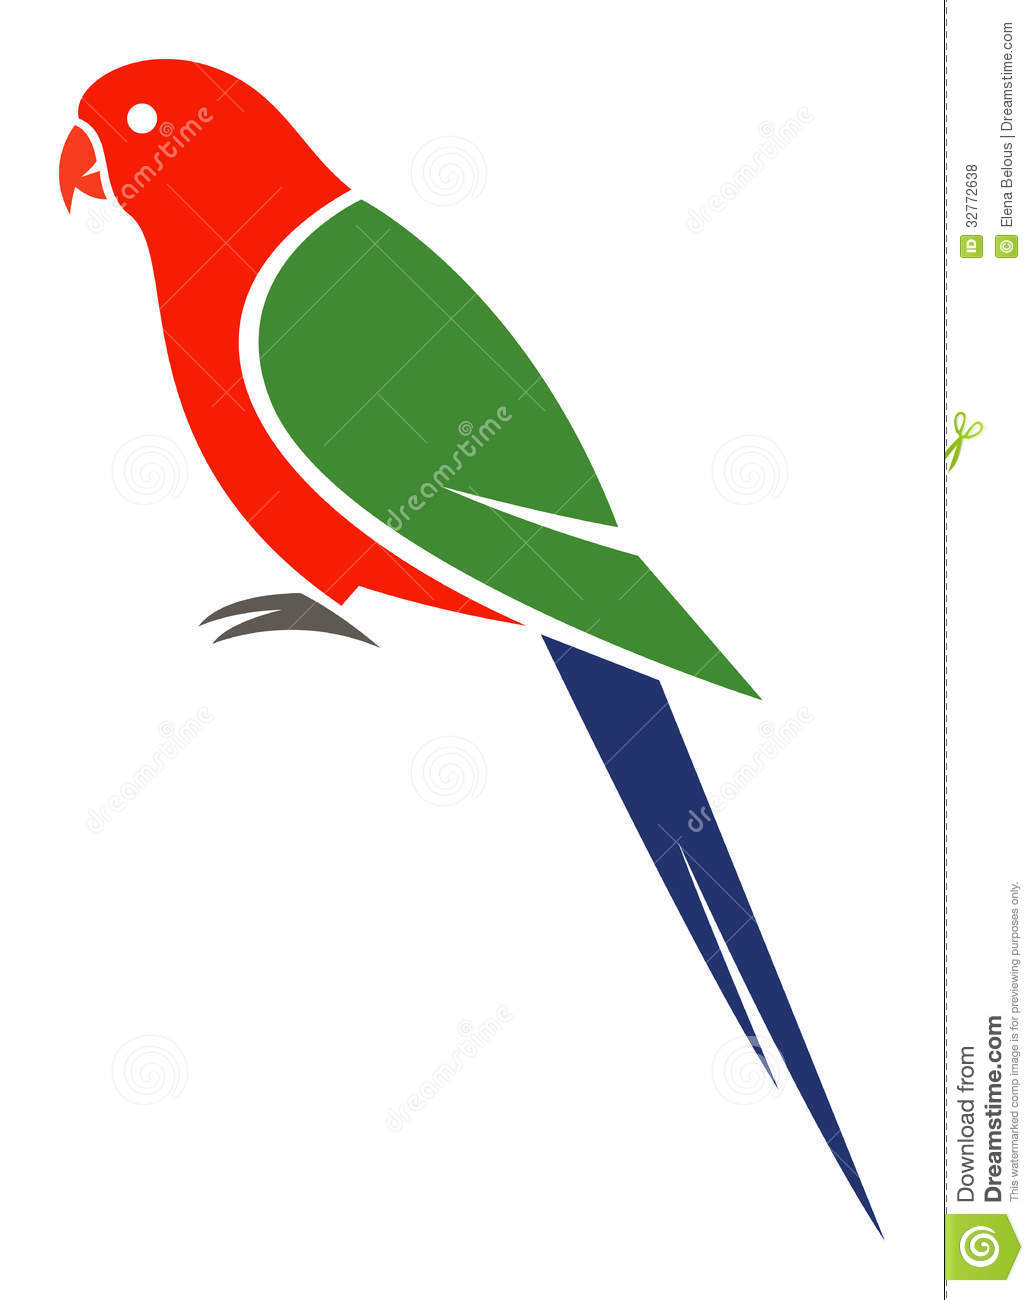 King Parrot clipart #18, Download drawings